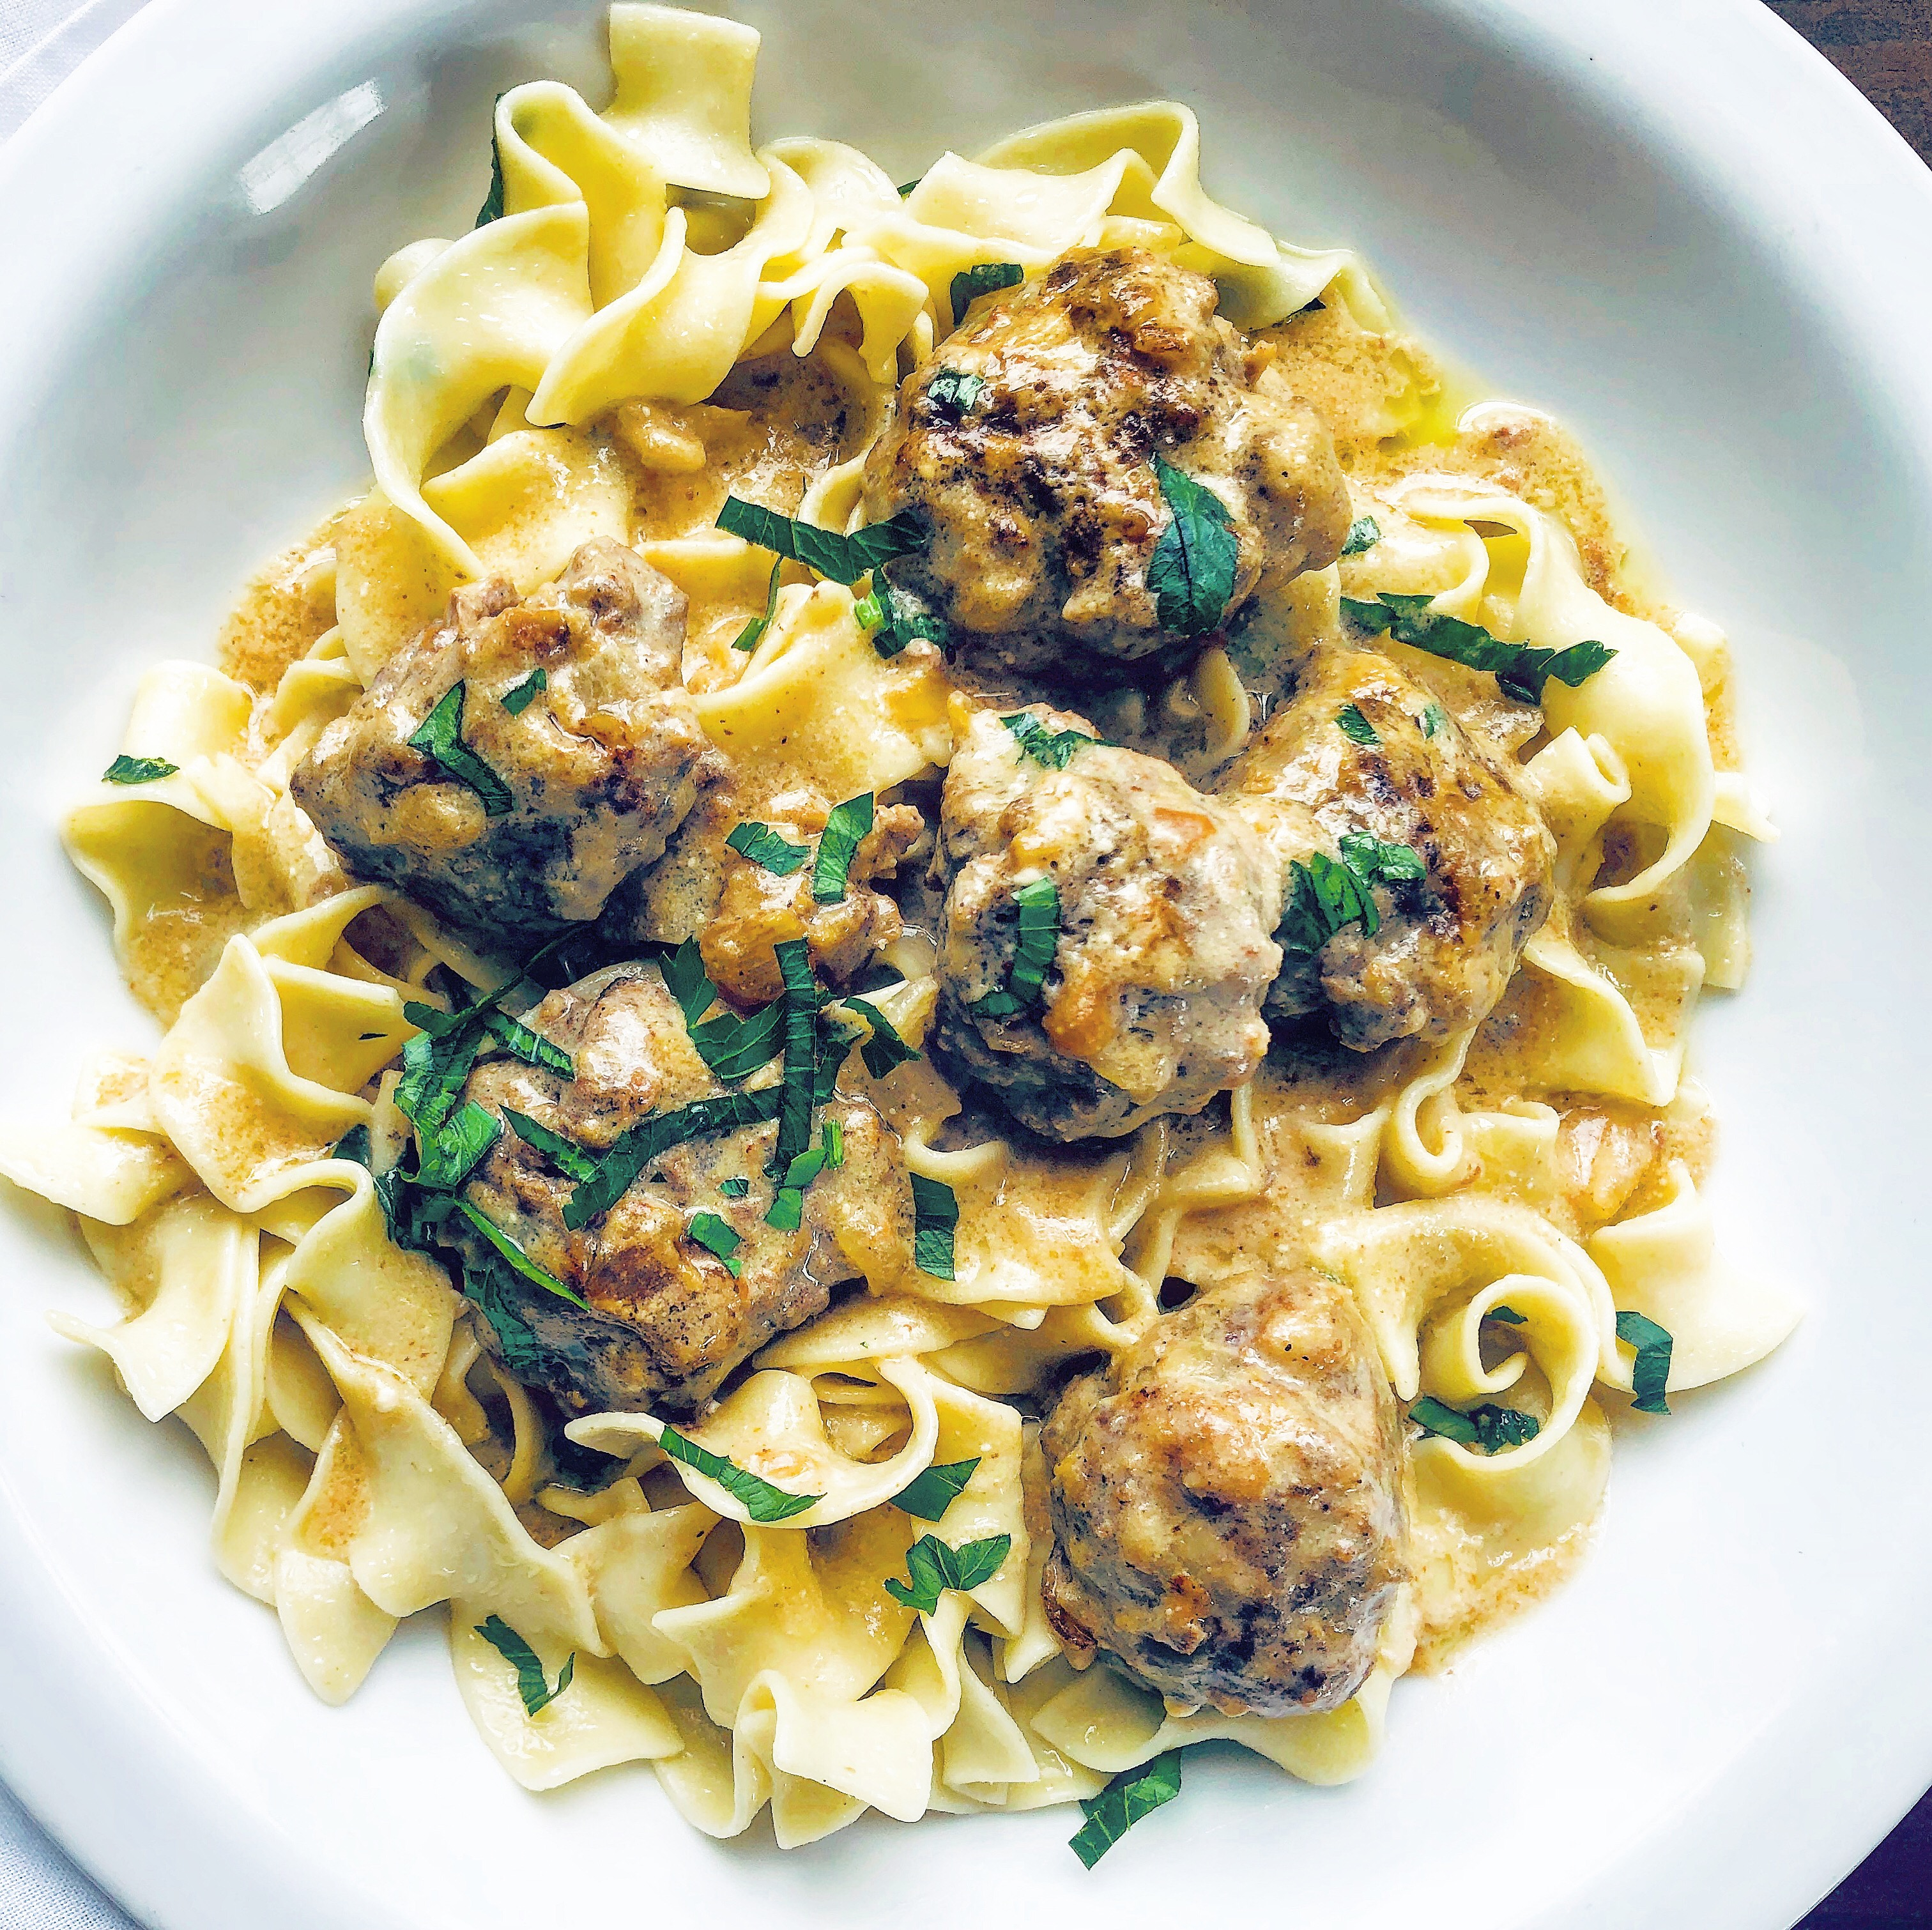 Lovely Swedish Meatballs In Brown Gravy The 2 Spoons